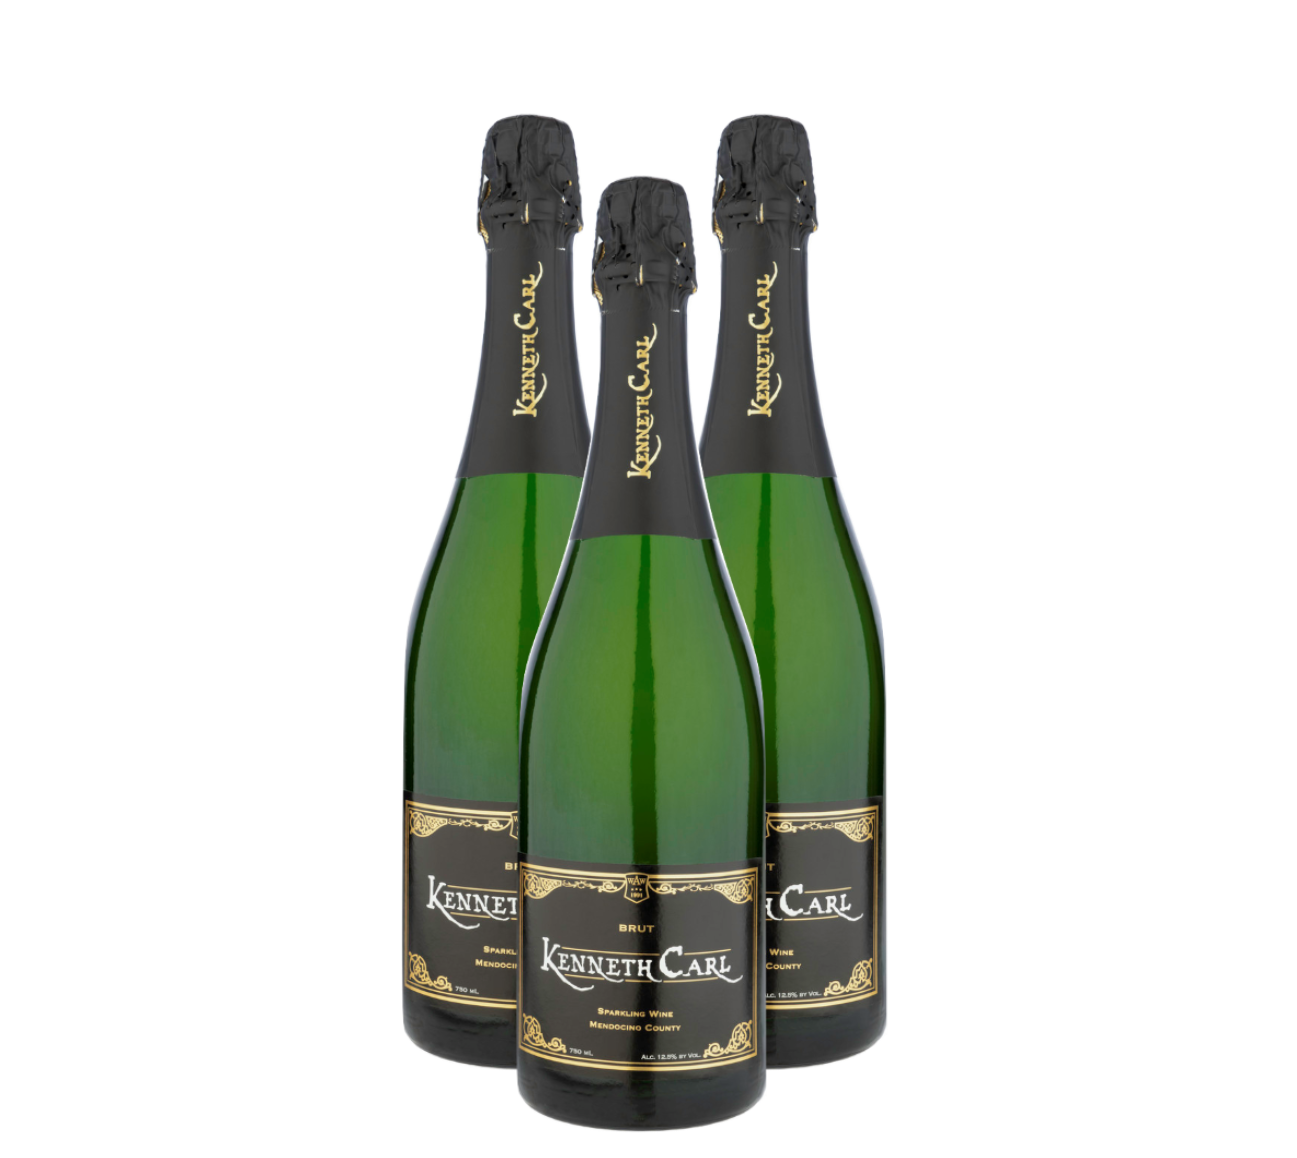 Kenneth Carl Brut 3-Pack MAIN